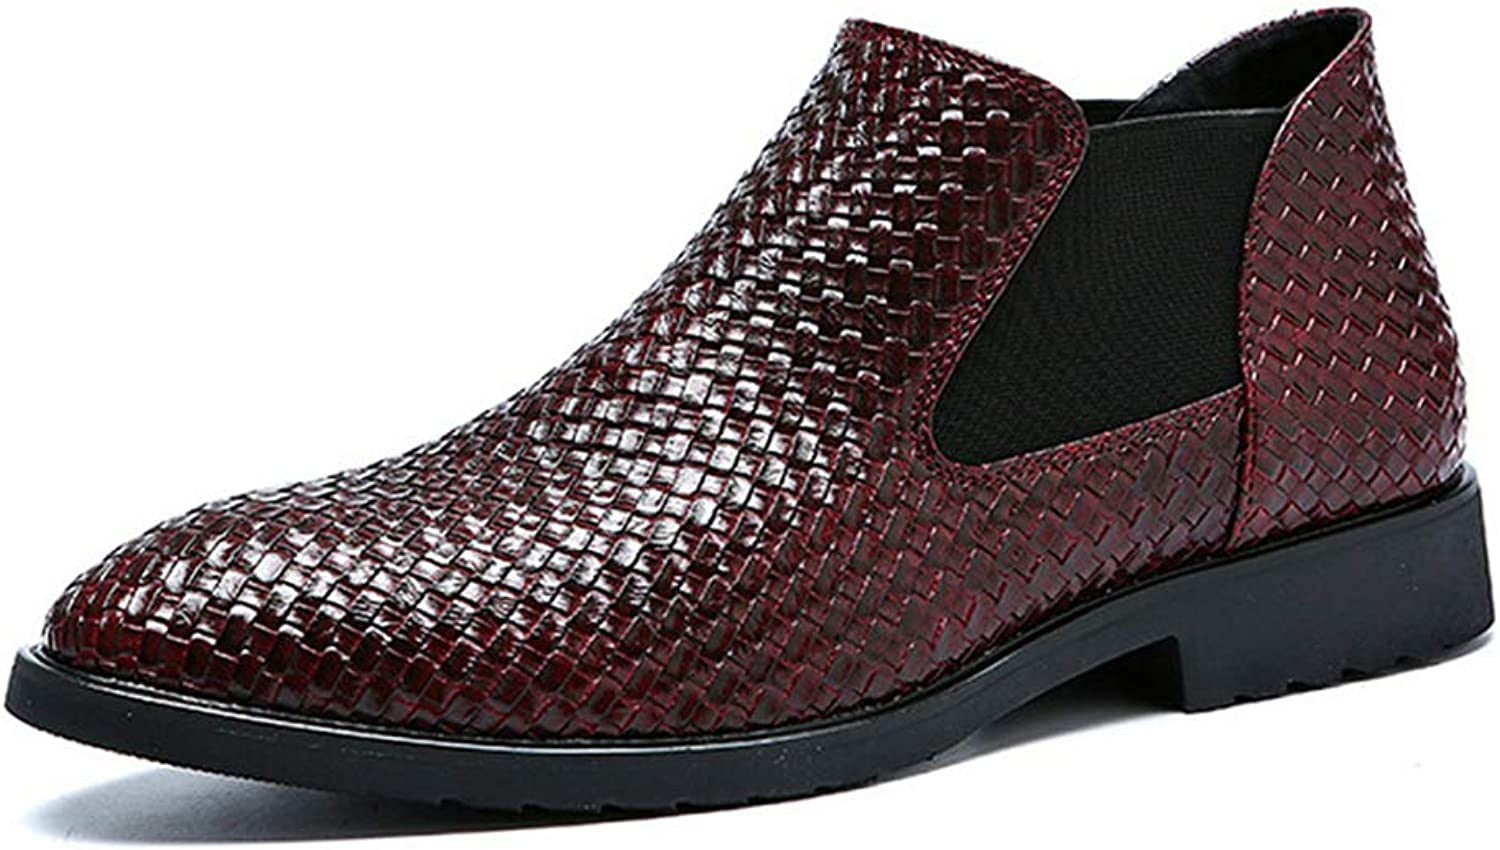 Mens Dress shoes Low Cut Pattern Leather Boot Formal Slip-on Business shoes